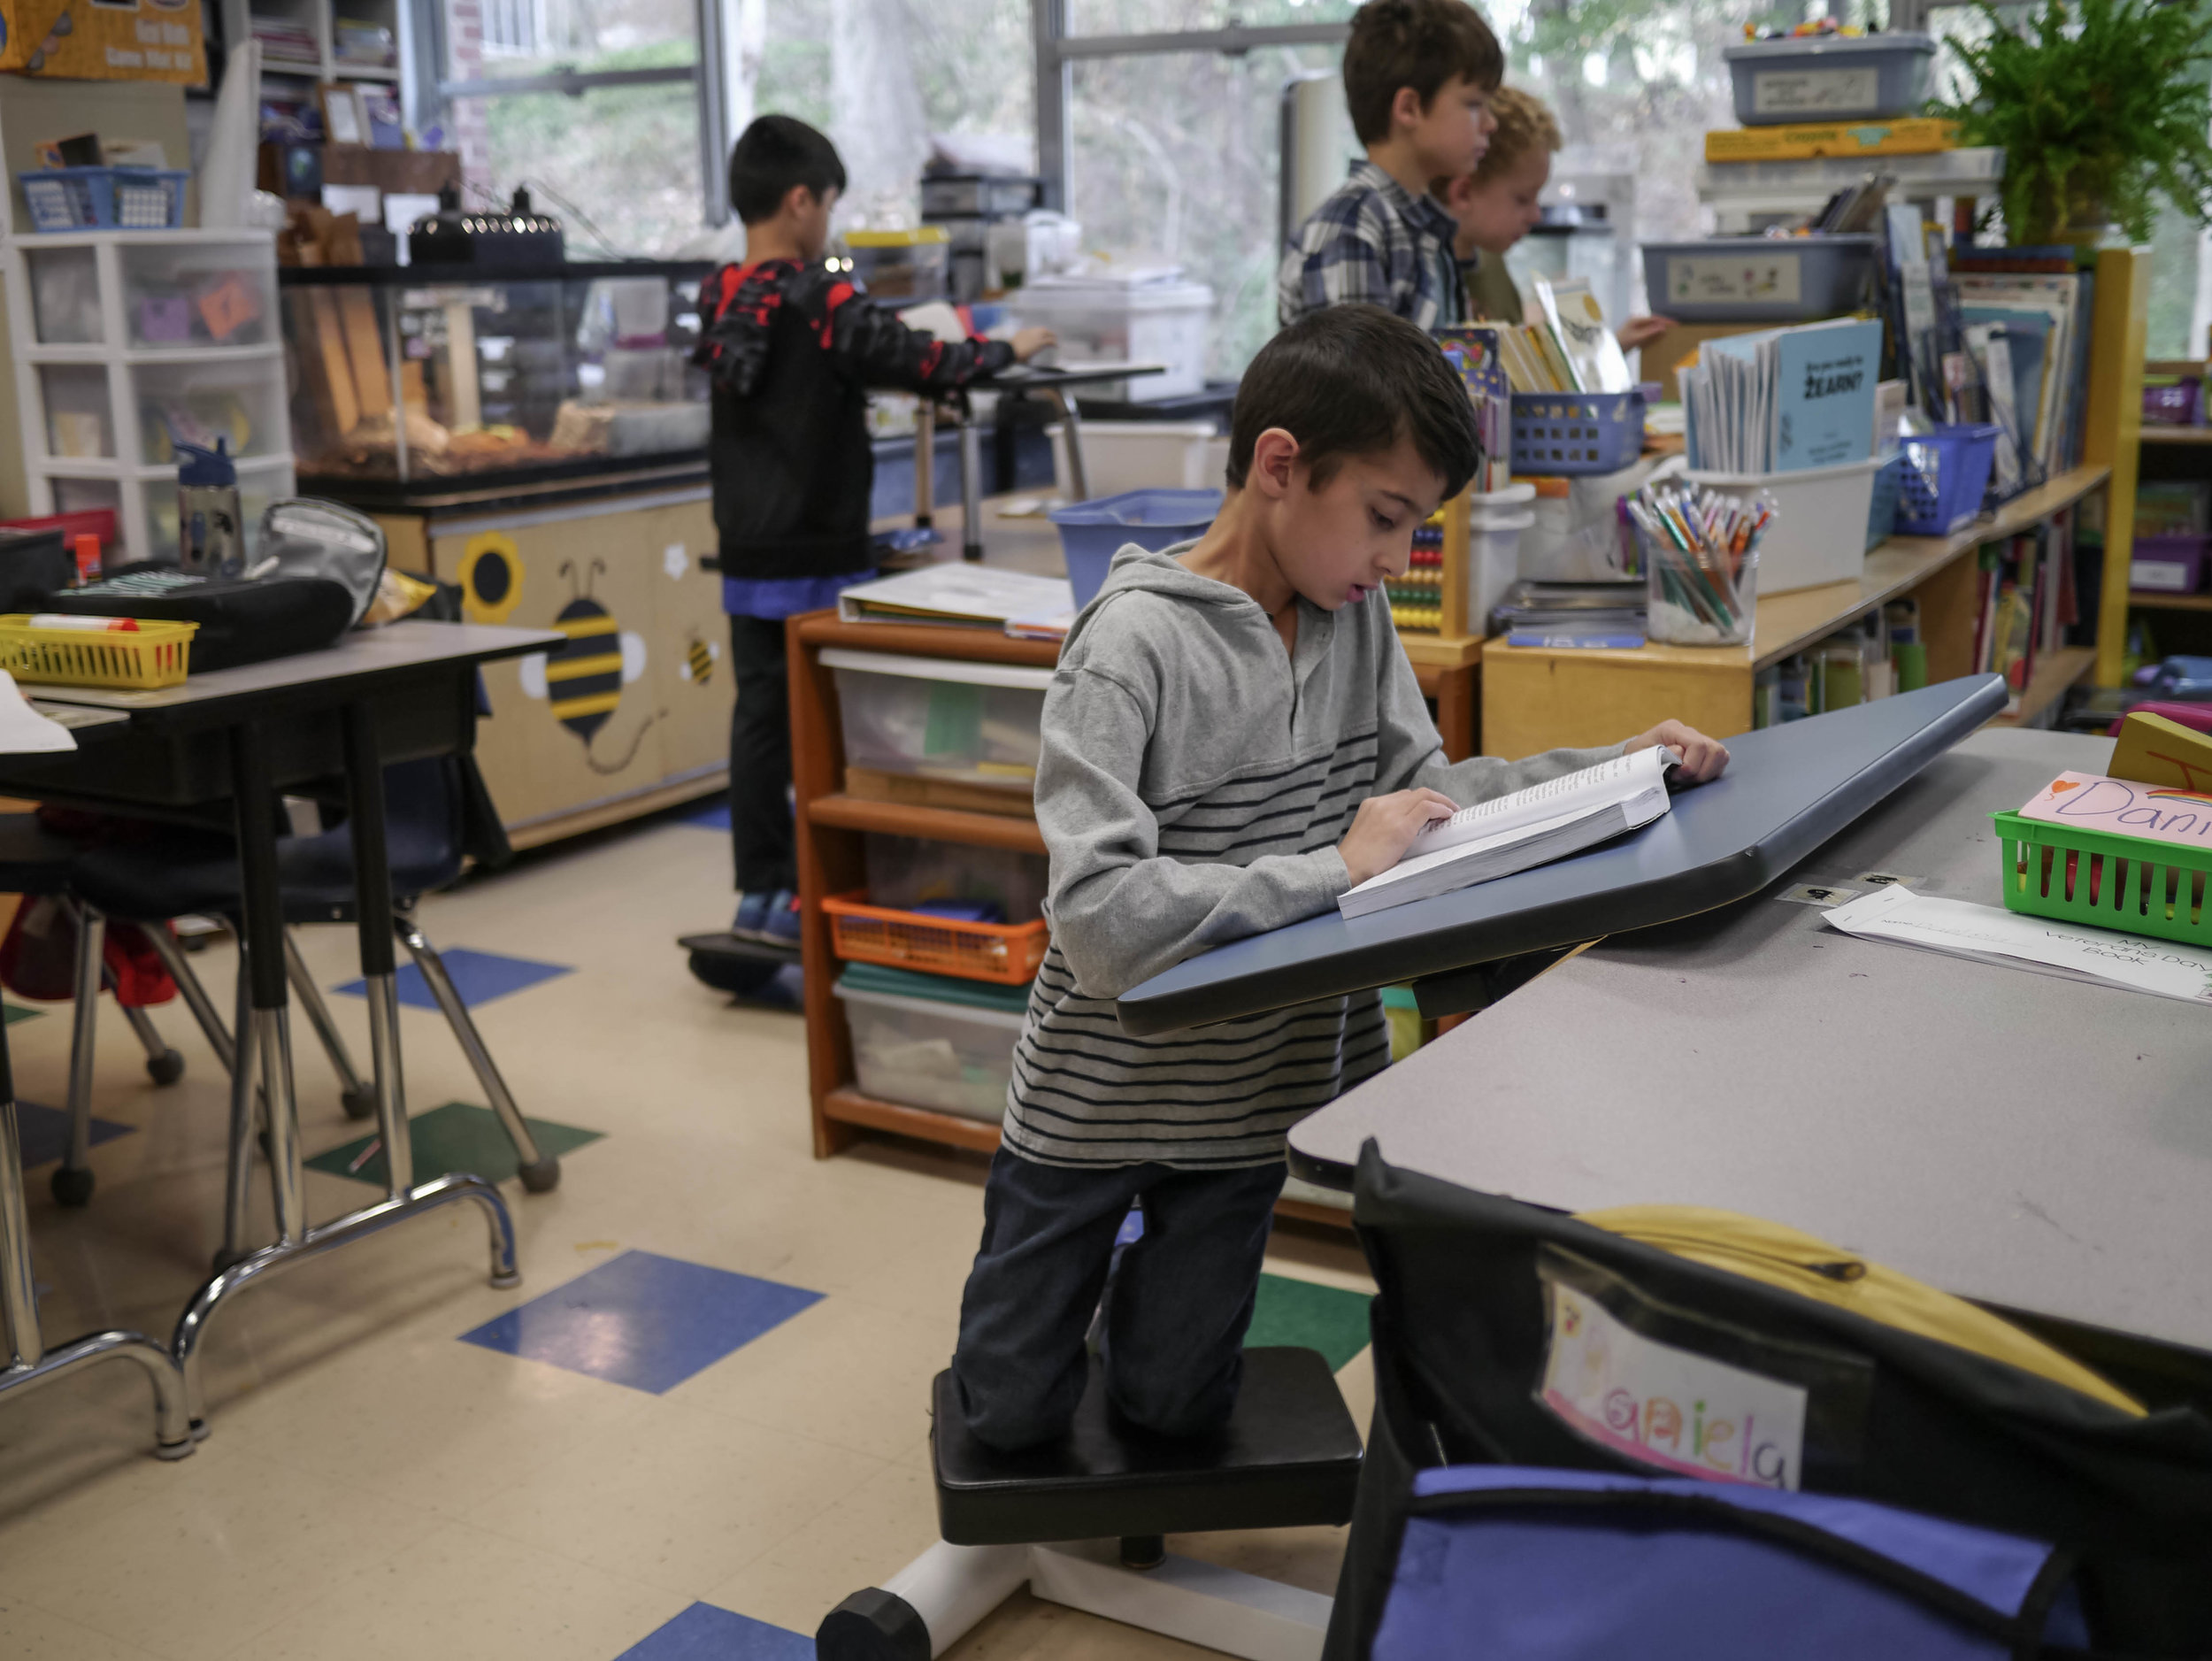 Classrooms are now outfitted with different types of flexible furniture, allowing students to move as they focus on their classwork.